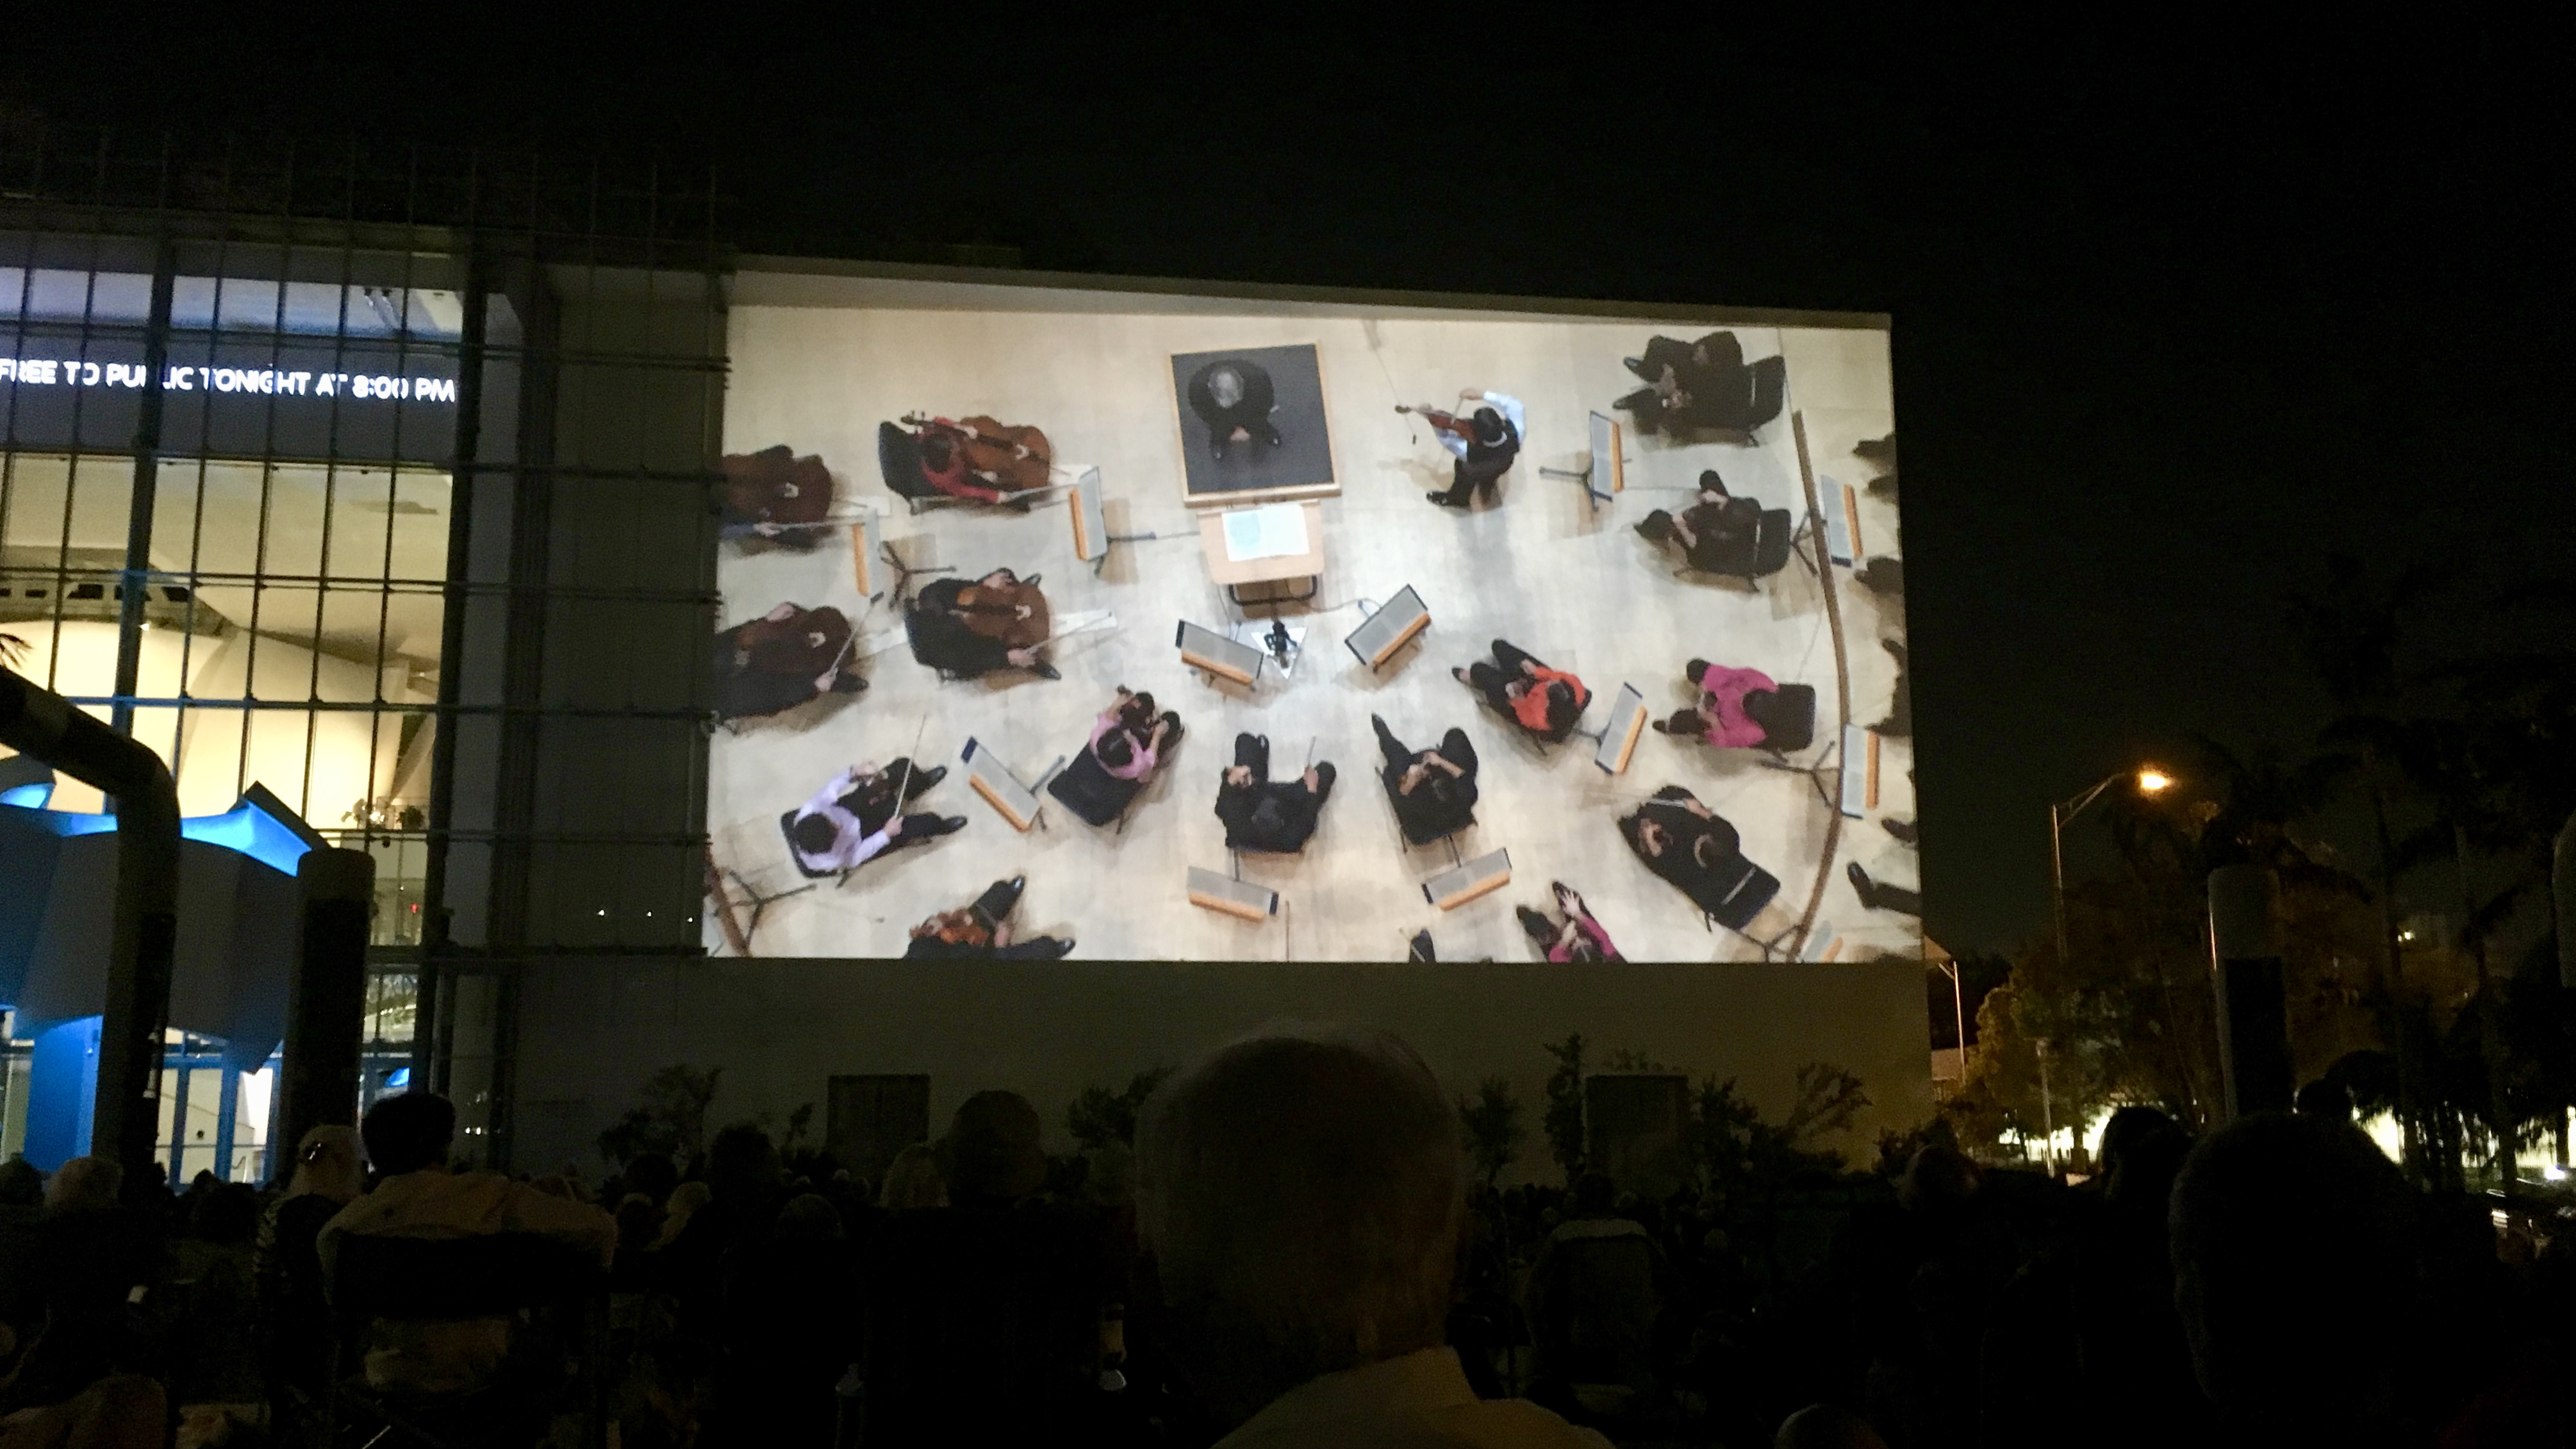 An overhead shot as seen on the Wallcast of a New World Symphony concert.